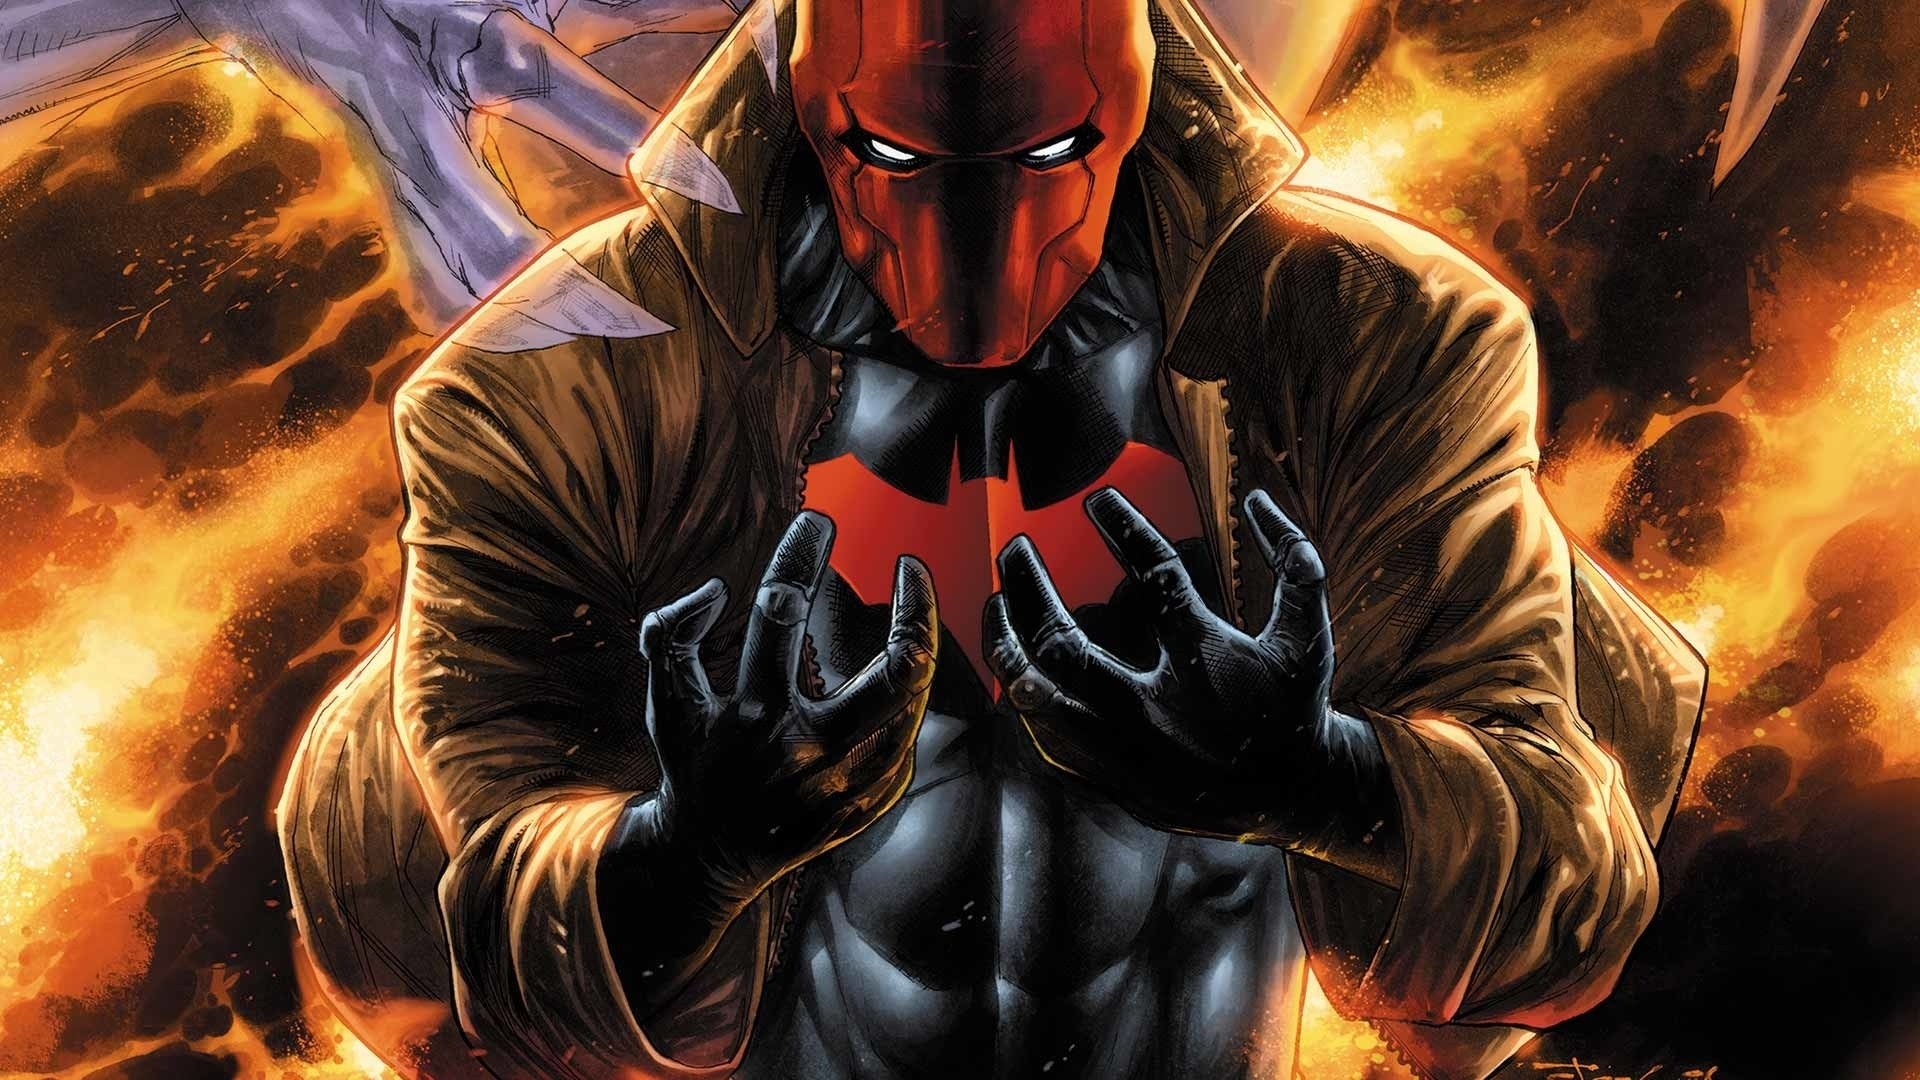 red hood wallpaper hd (79+ images)